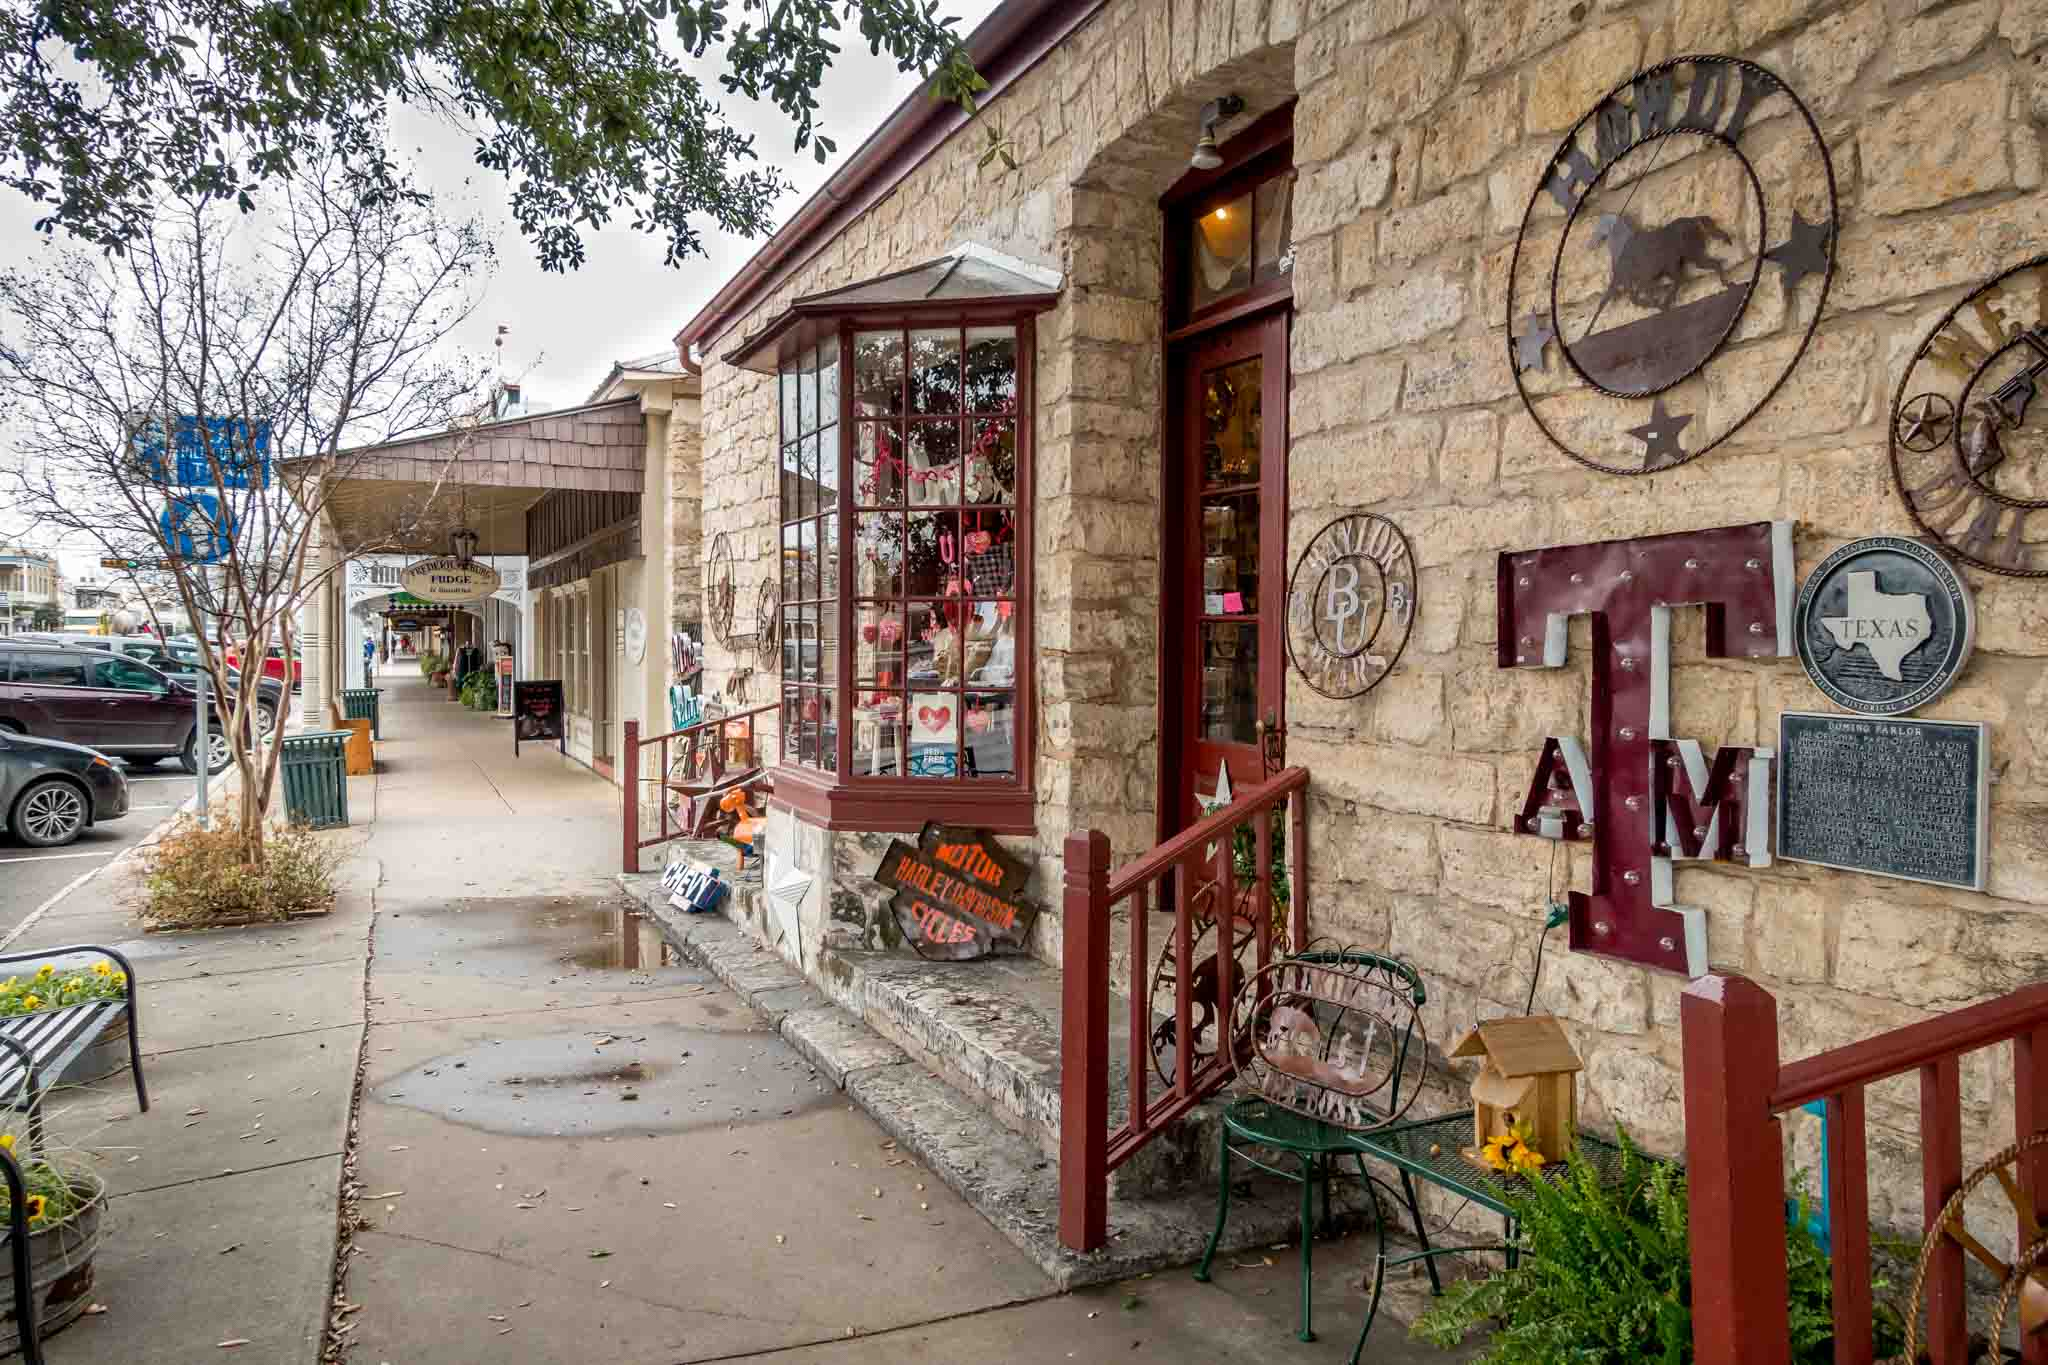 Shops on Main Street in Fredericksburg, part of one of the best Texas road trips